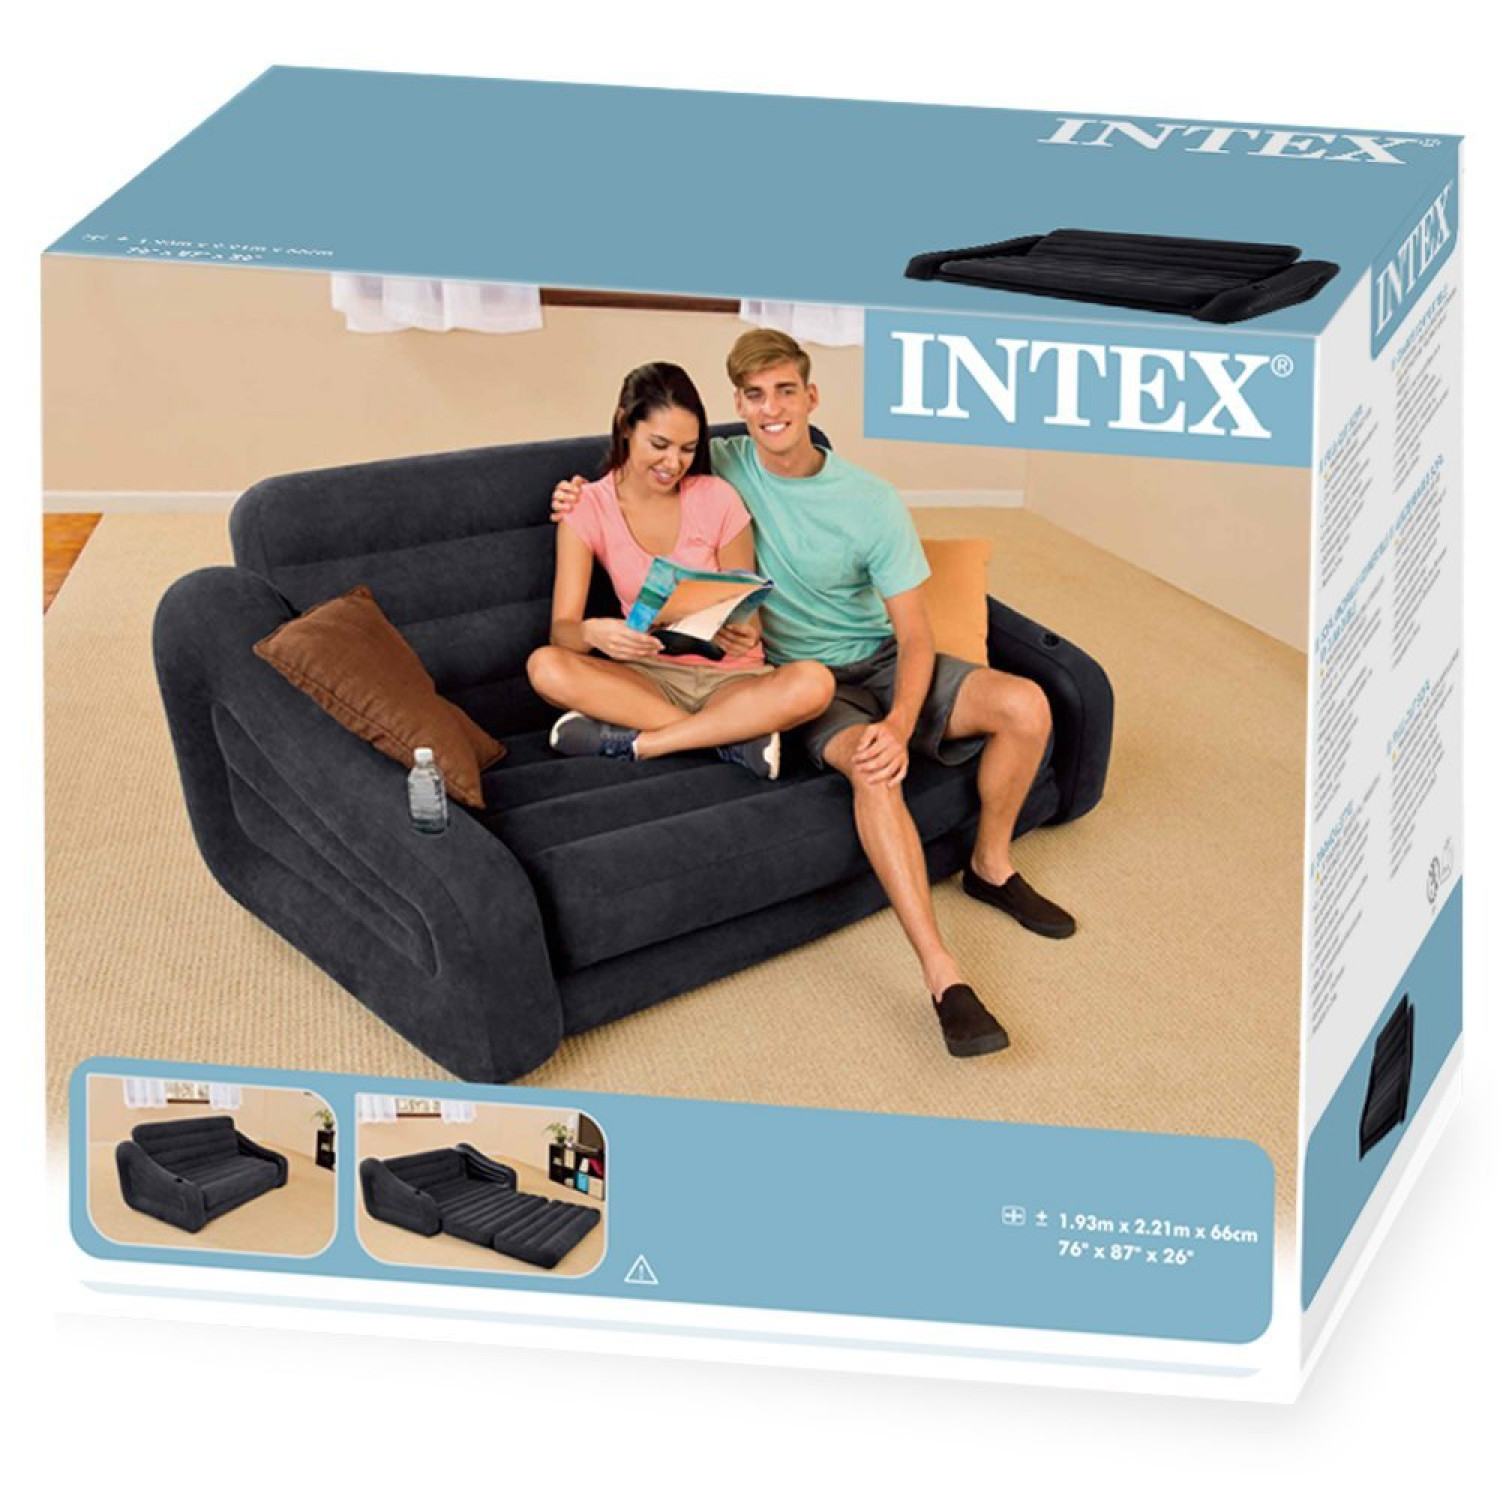 Black Inflatable Double Blow Up Camping kids Air Bed Sofa  : newz355457u265z265 from www.ebay.co.uk size 1500 x 1500 jpeg 323kB